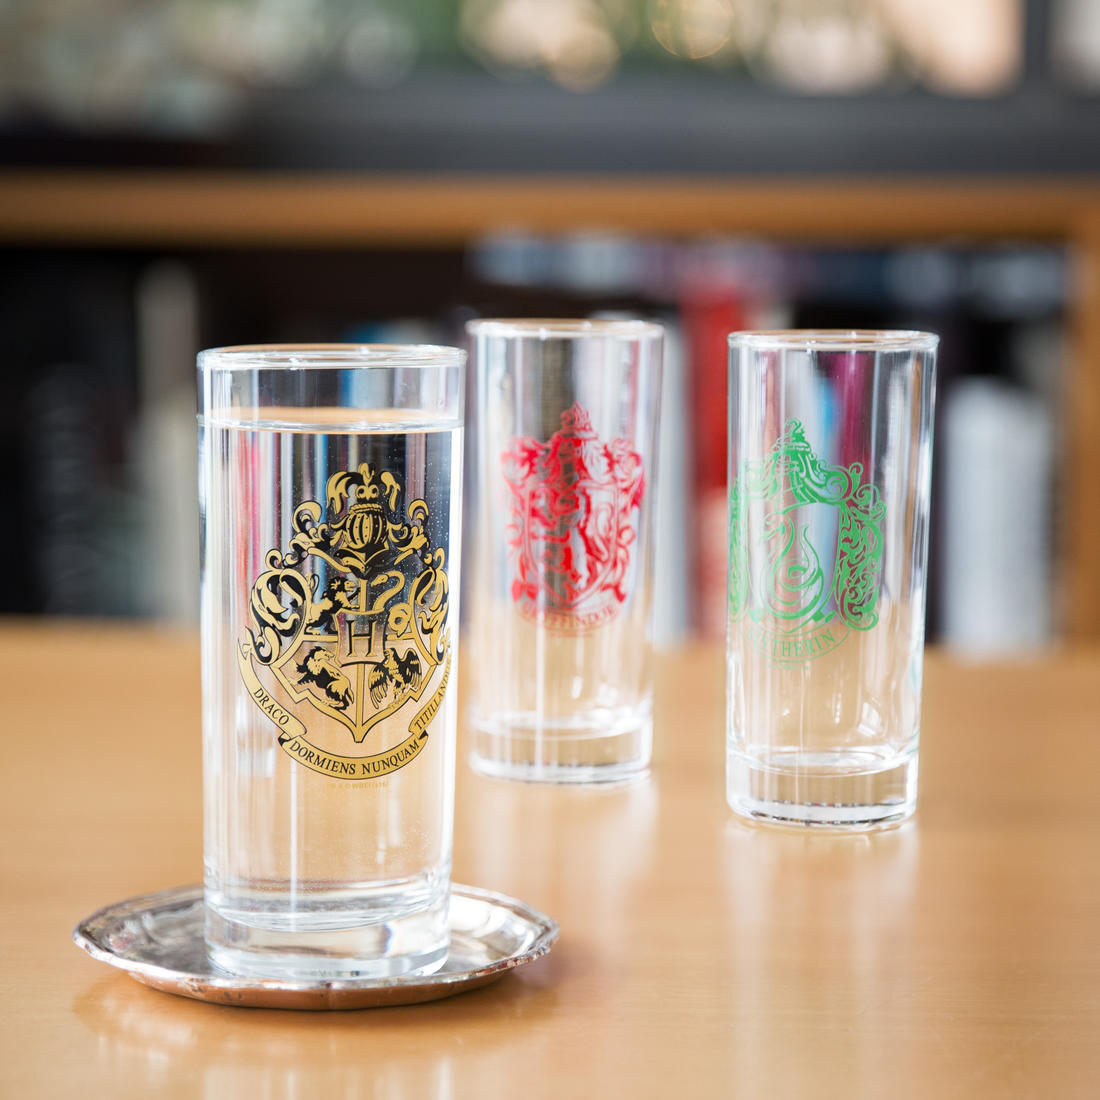 Lot de verres Harry Potter